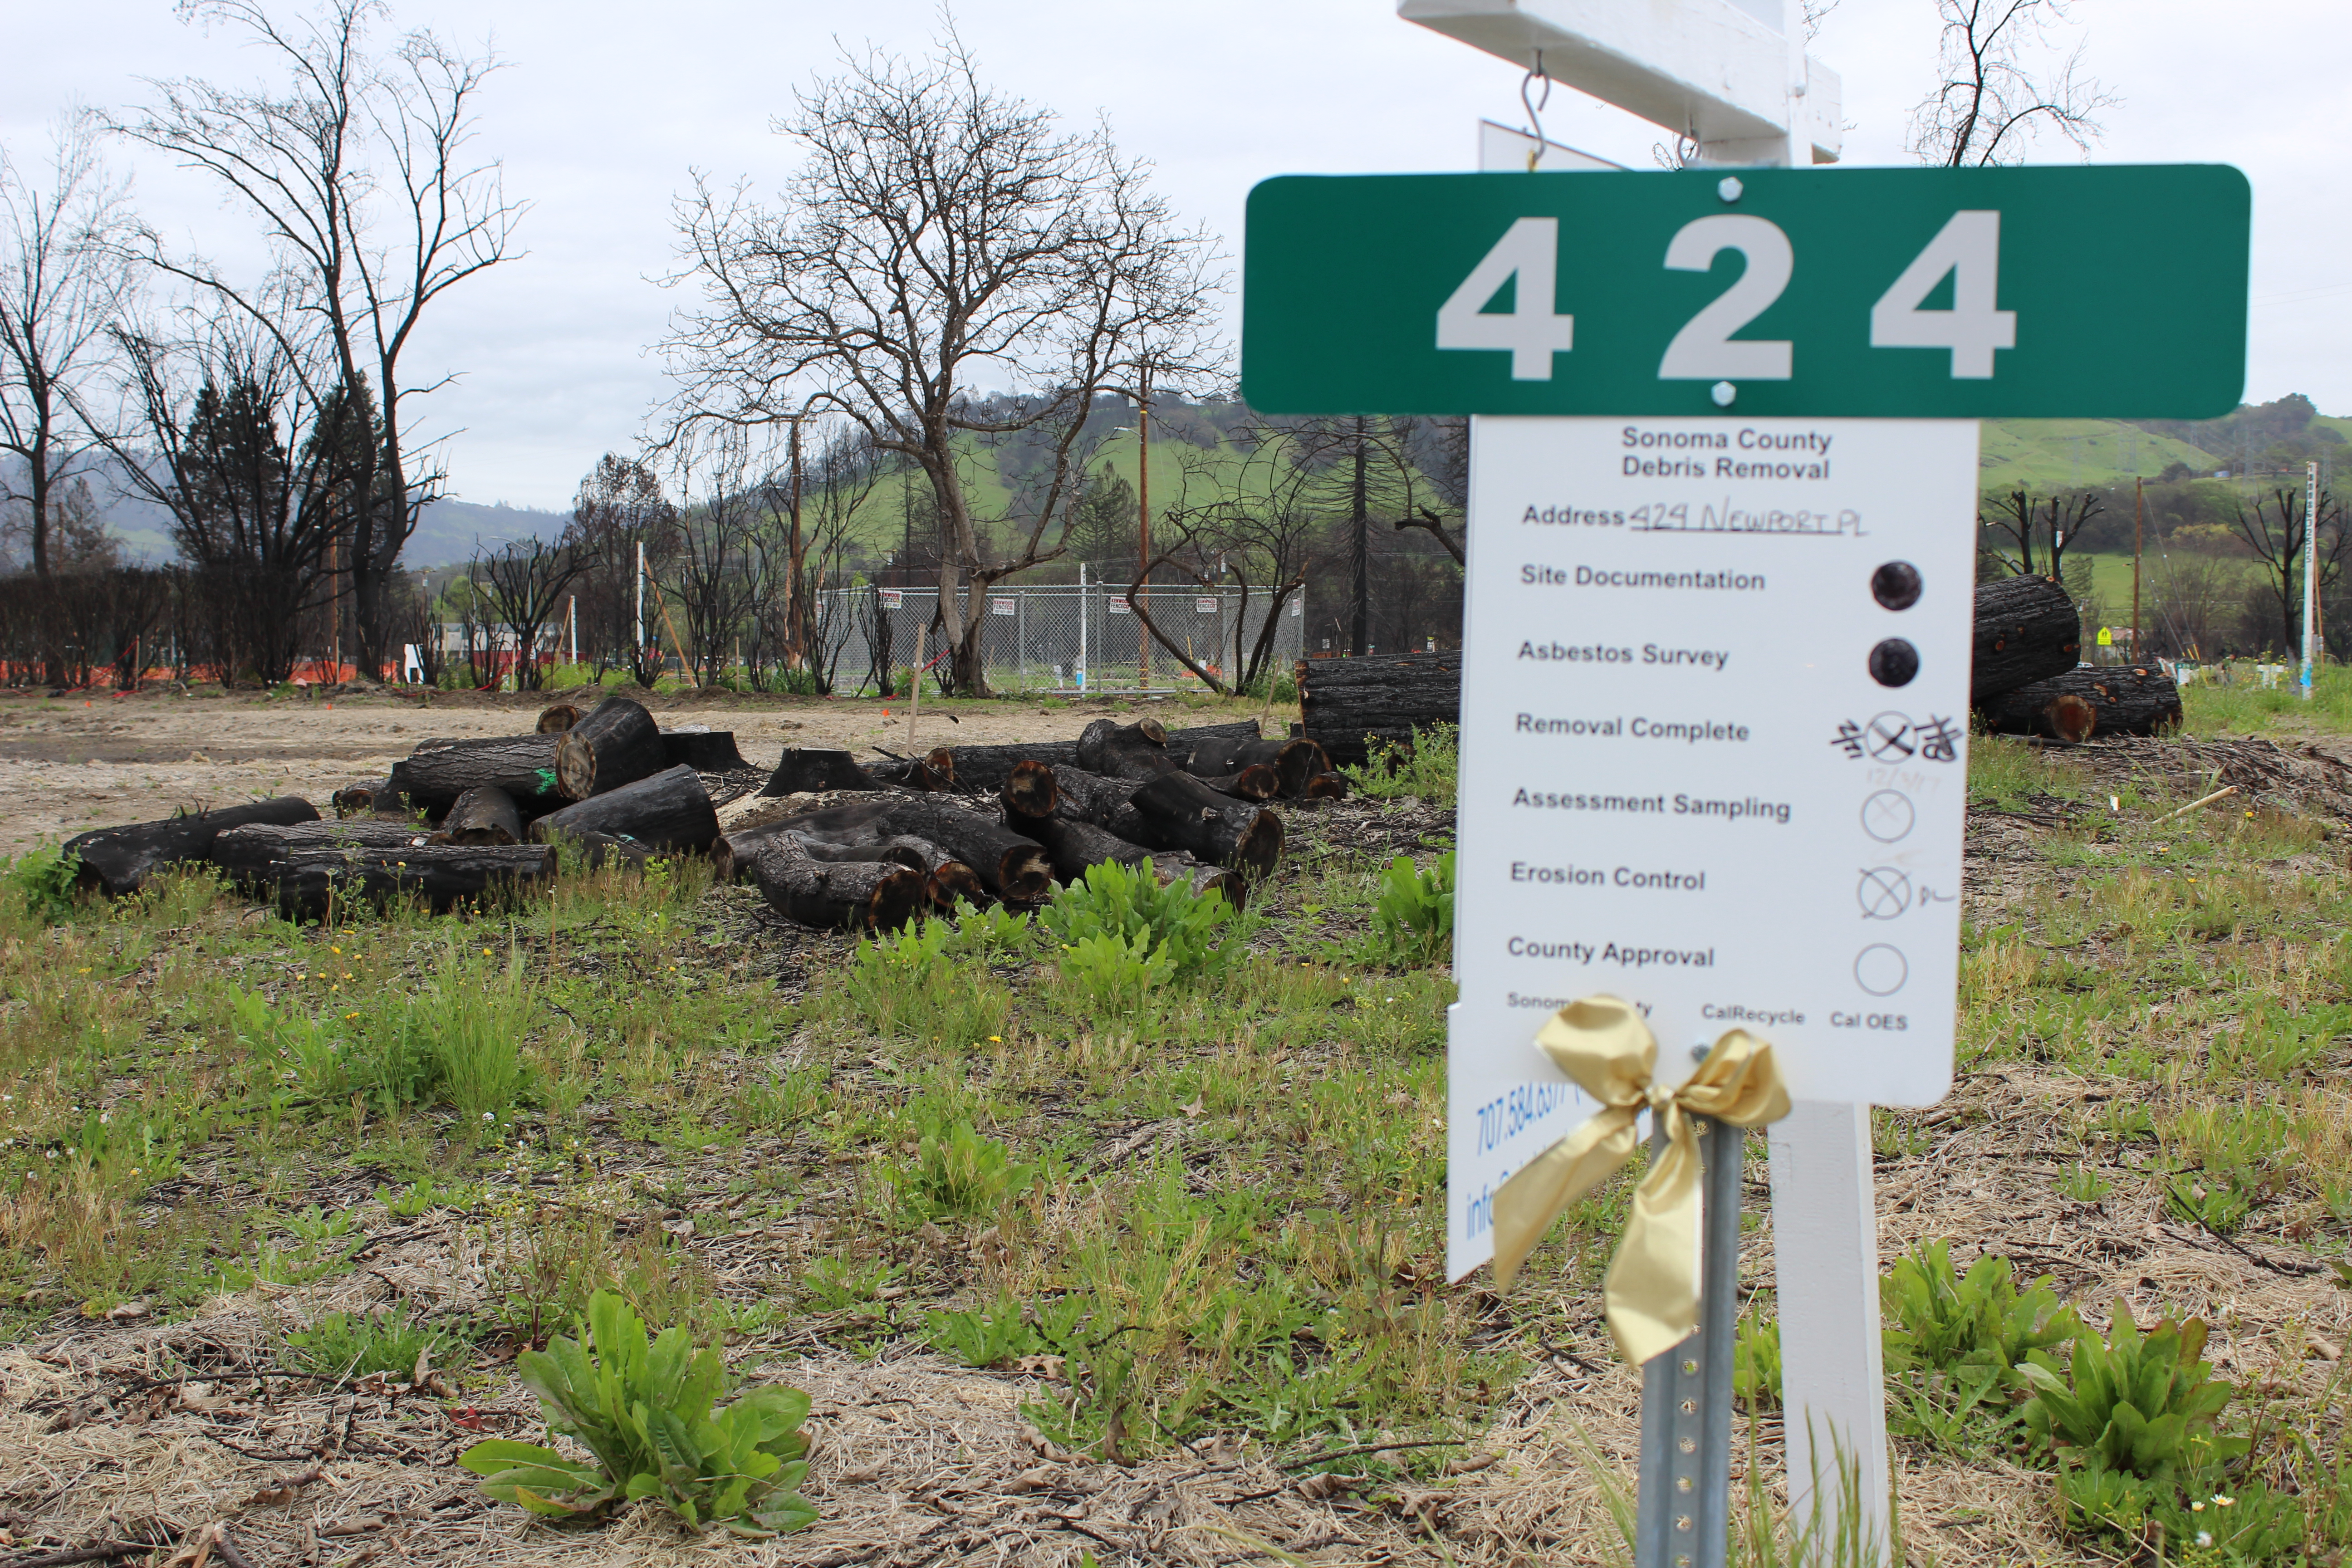 At an empty lot in the former fire zone, new green growth mixes with charred remains of trees, April 2018. (Photo/Rob Gloster)